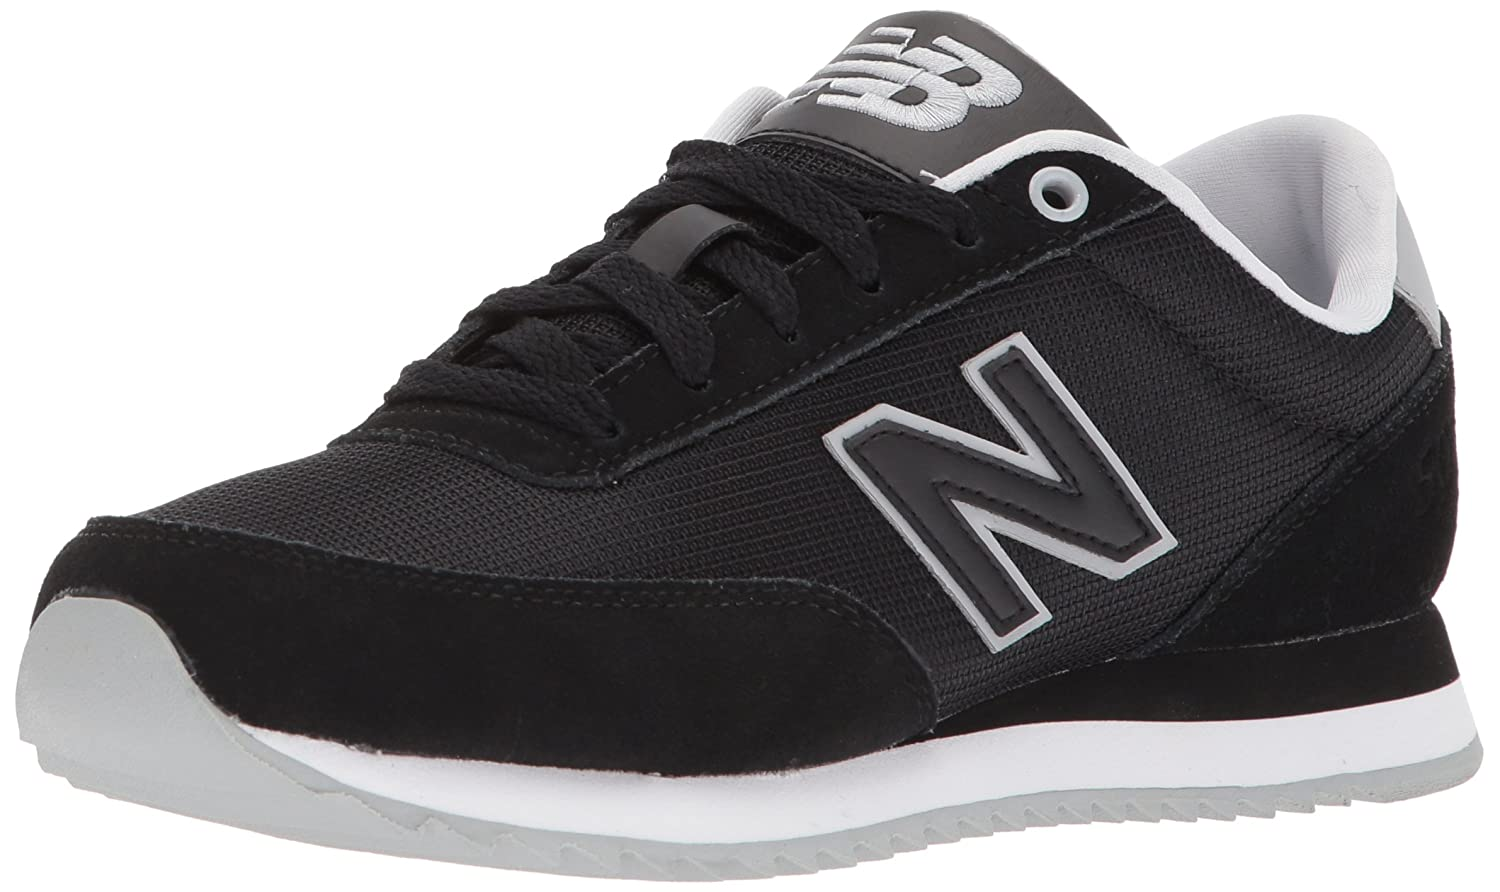 be565fd9a17e1 Amazon.com | New Balance Women's 501v1 Sneaker | Fashion Sneakers